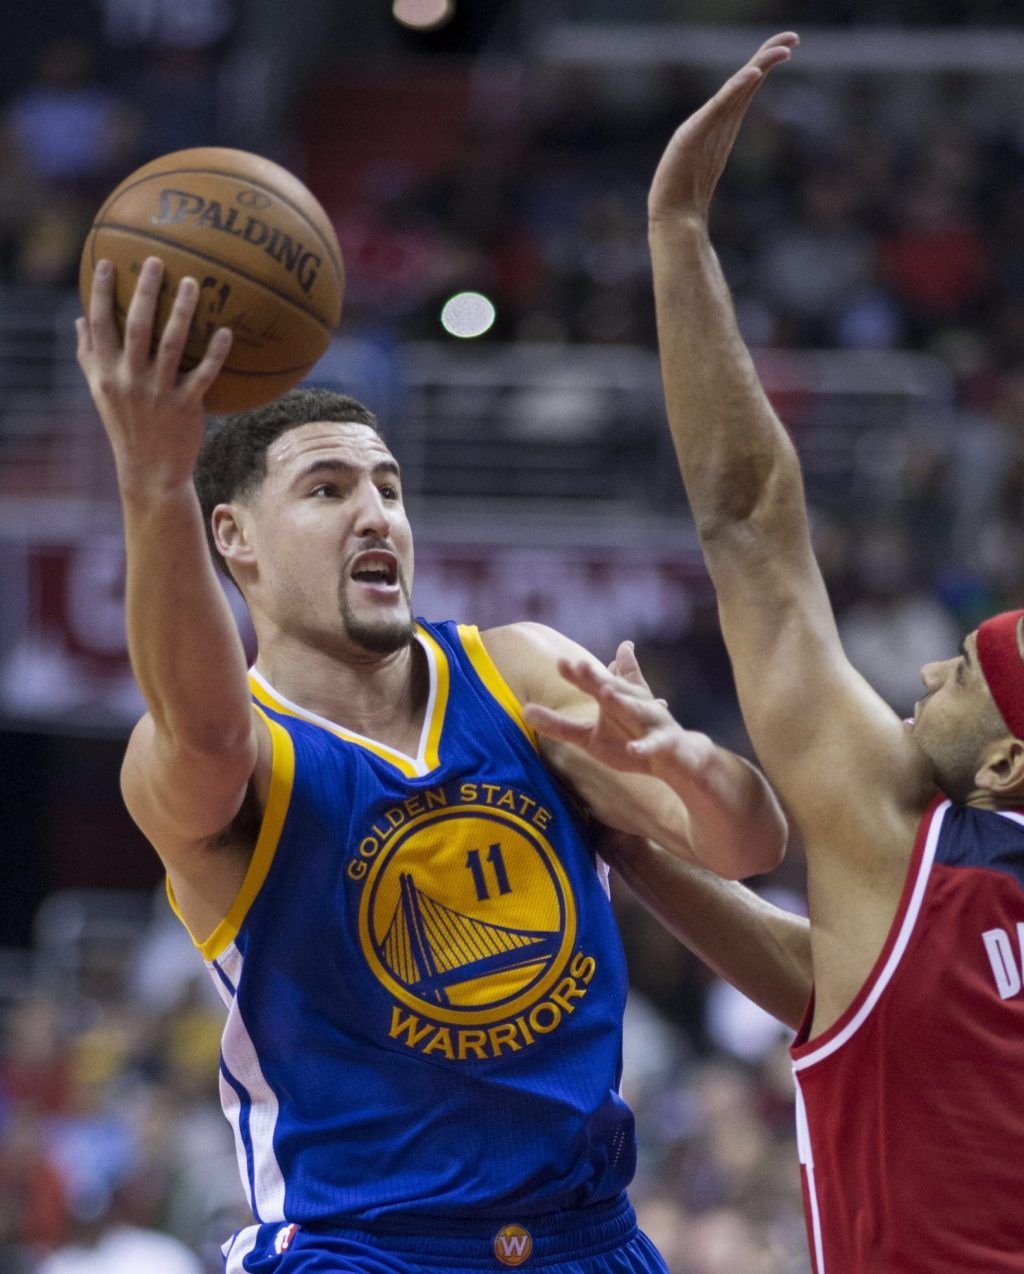 Orange County Native and Star NBA Player Klay Thompson takes the ball to the rim.  Courtesy:  Creative Commons